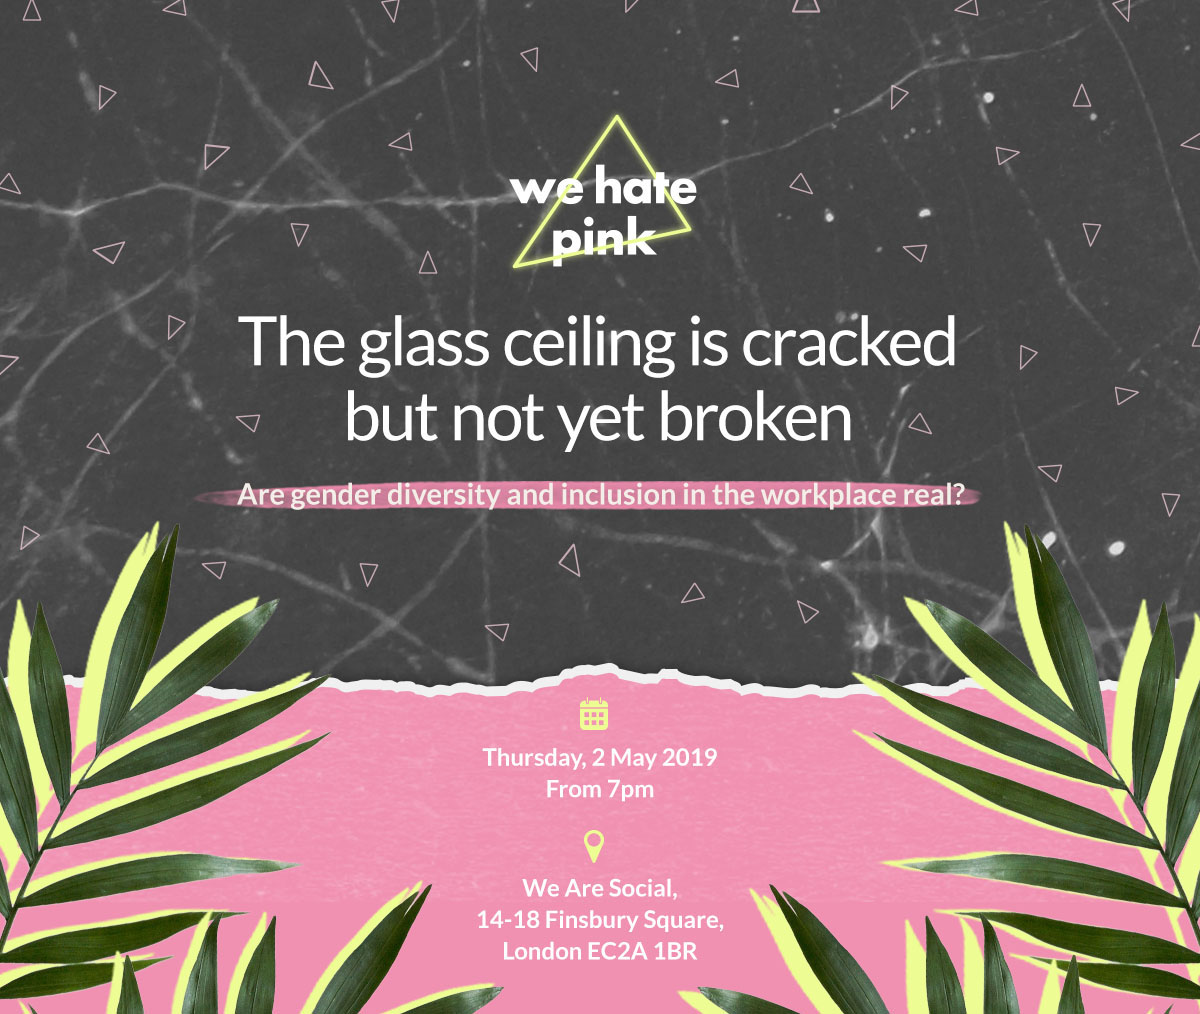 We Hate Pink event - 2 May, 2019 - We Are Social, London